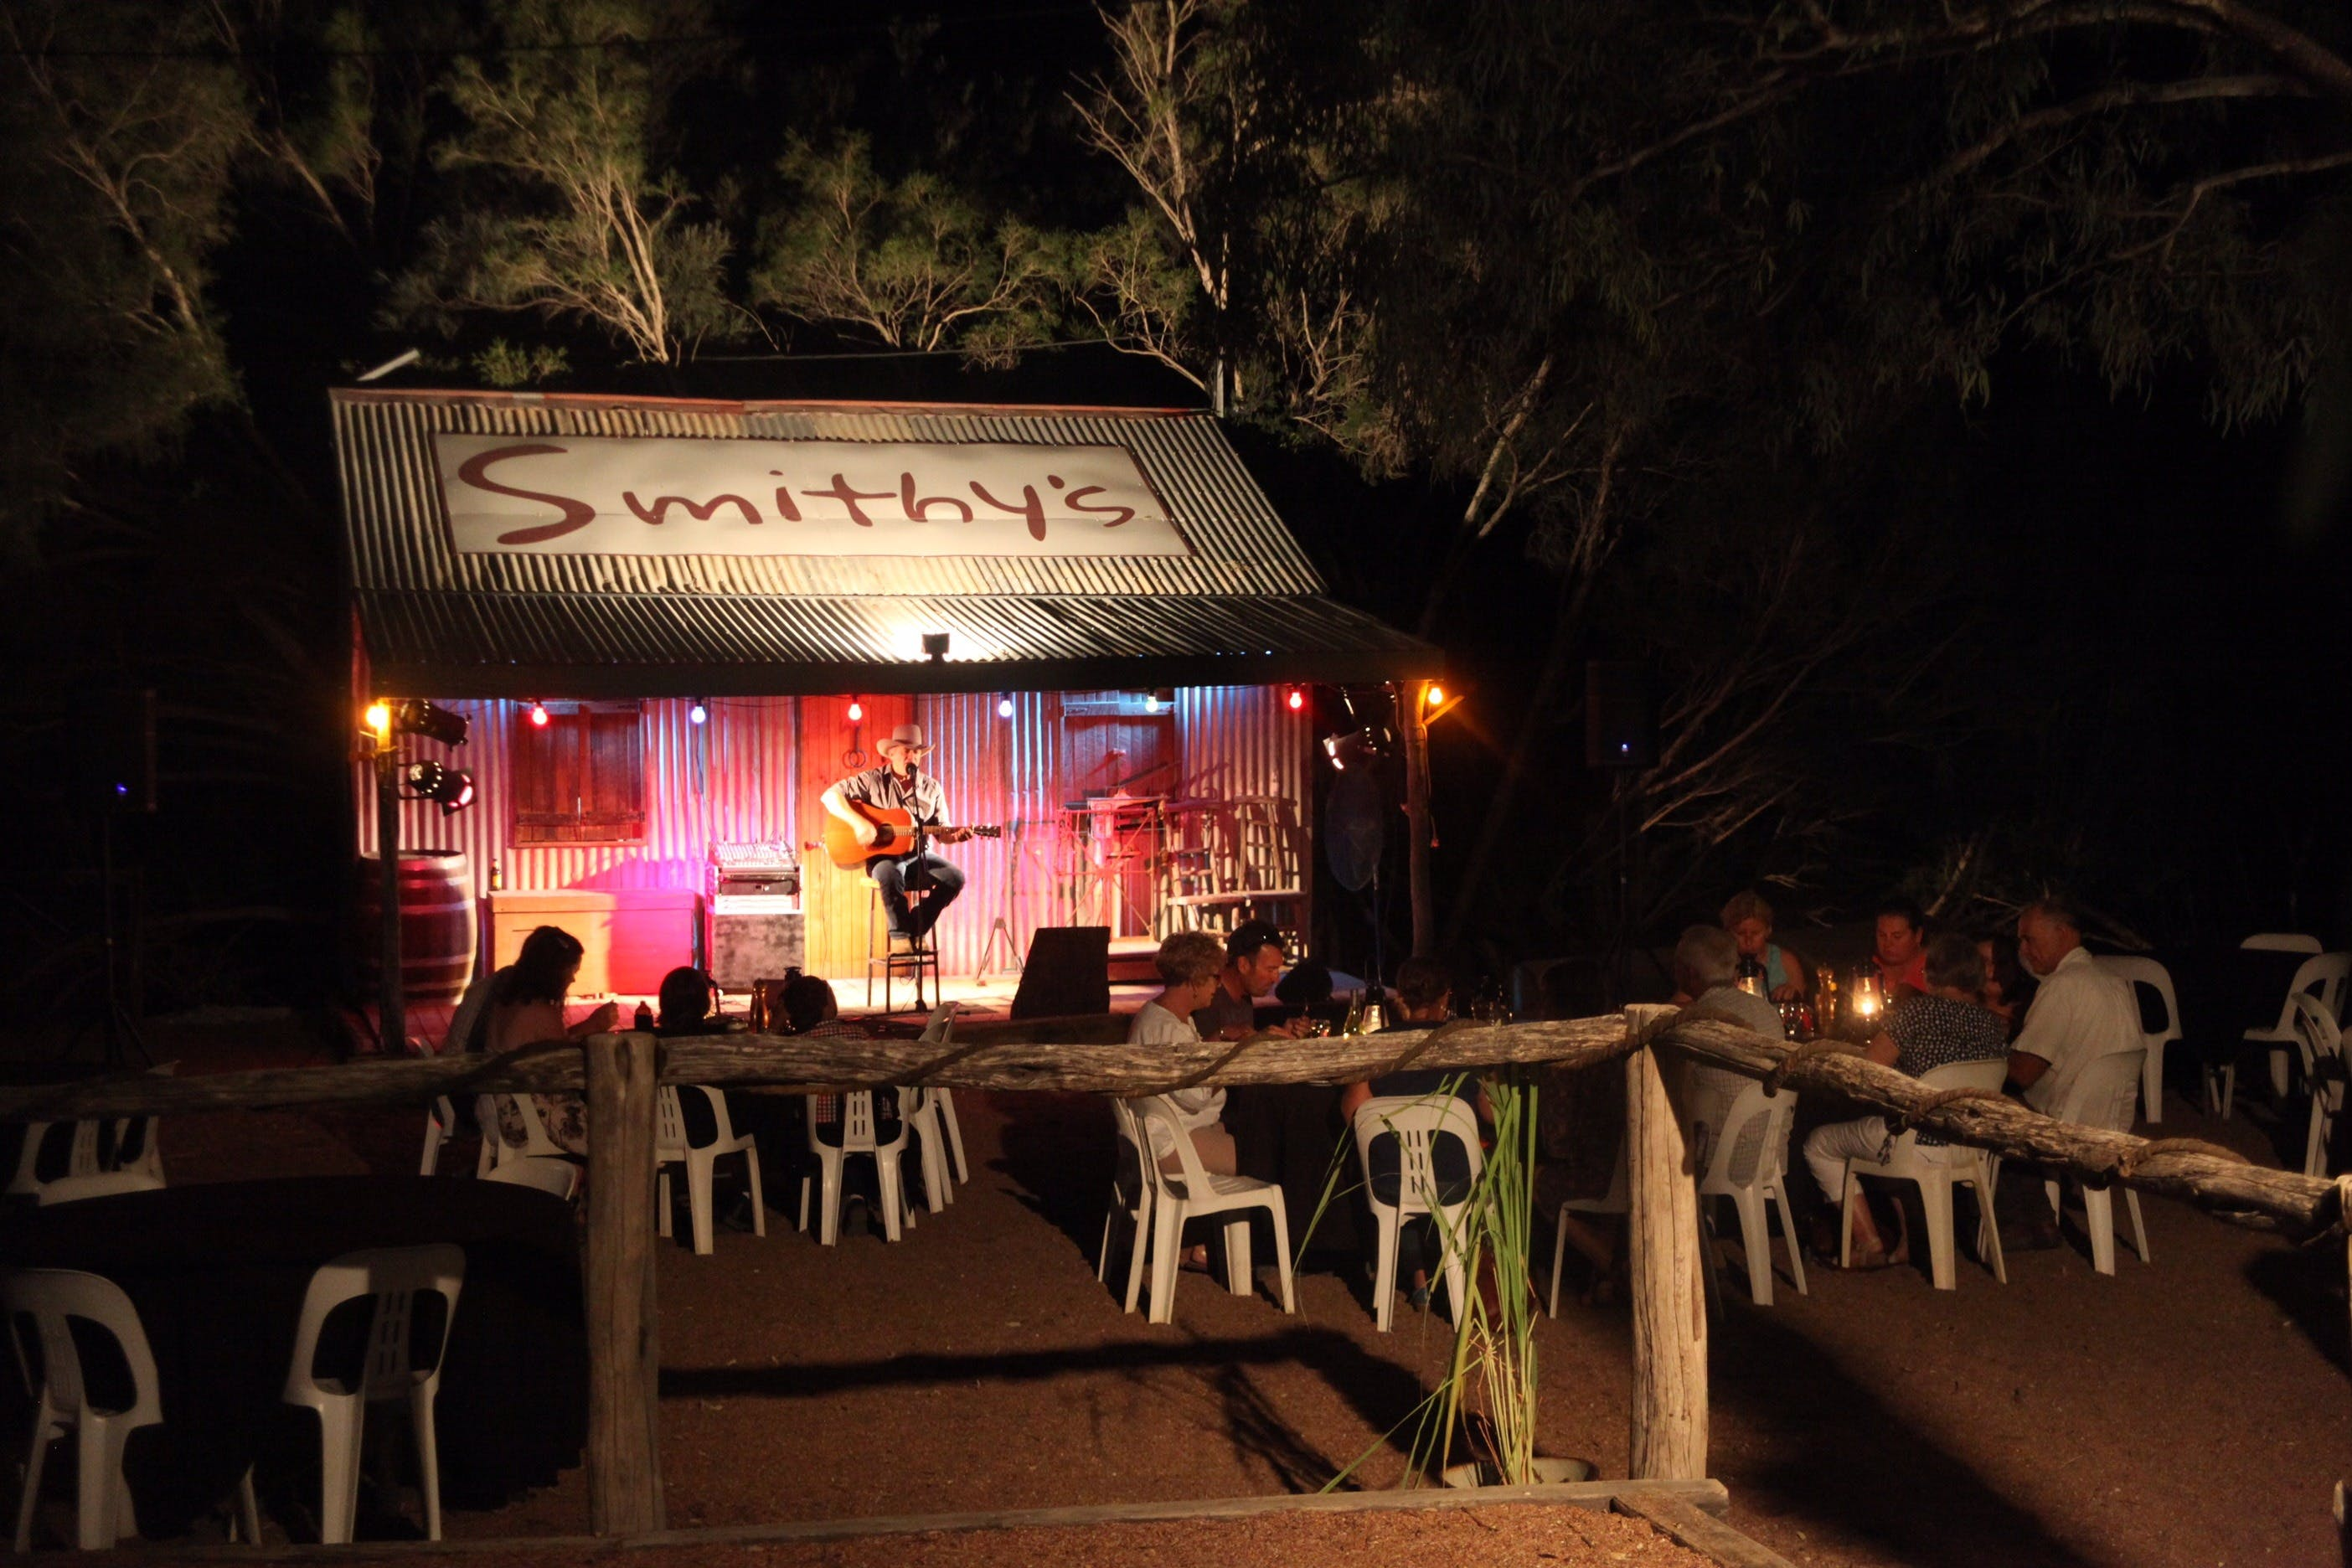 Smithy's Outback Dinner and Show